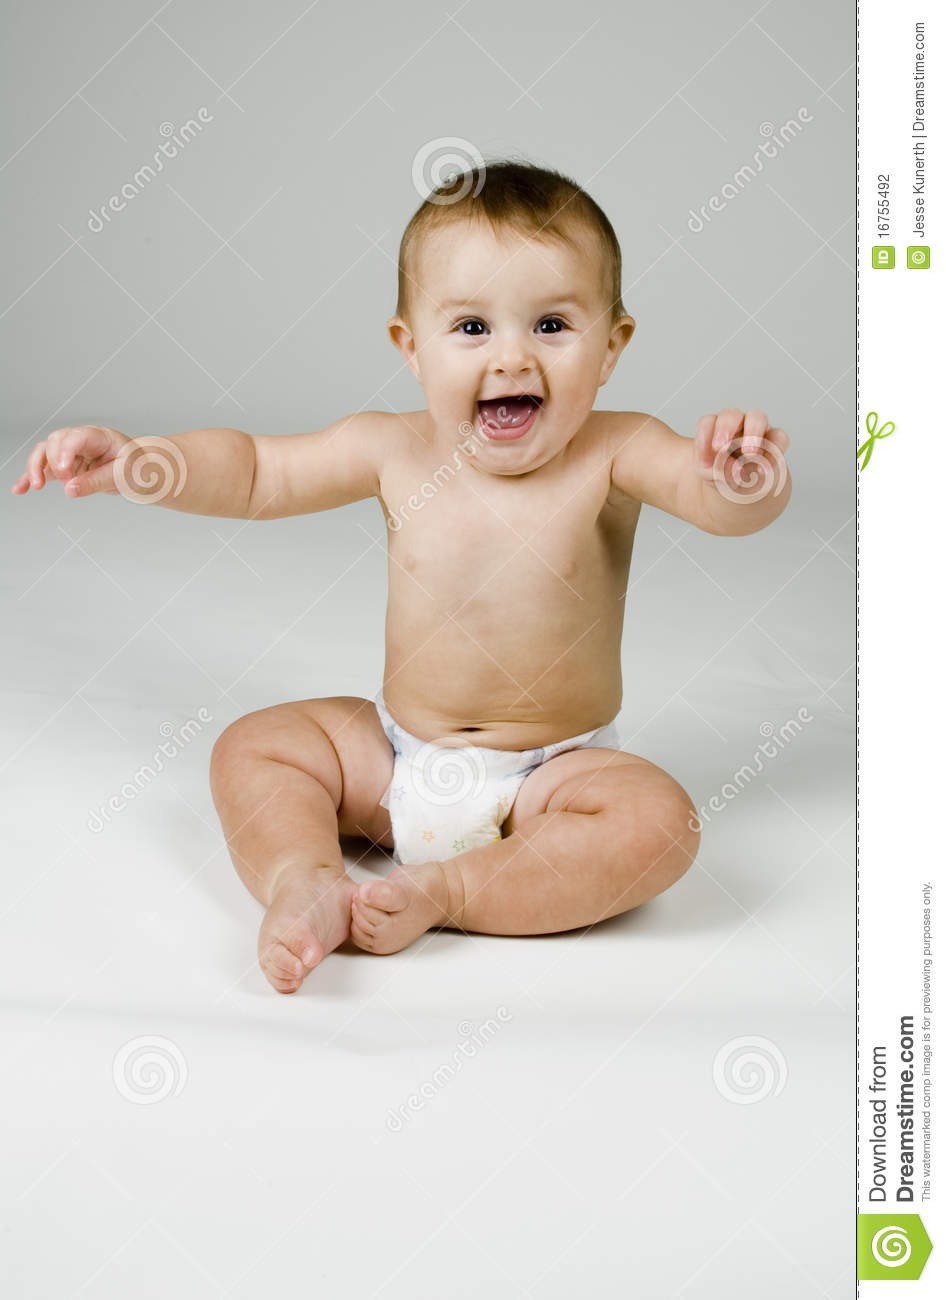 Cute Baby with Happy Face